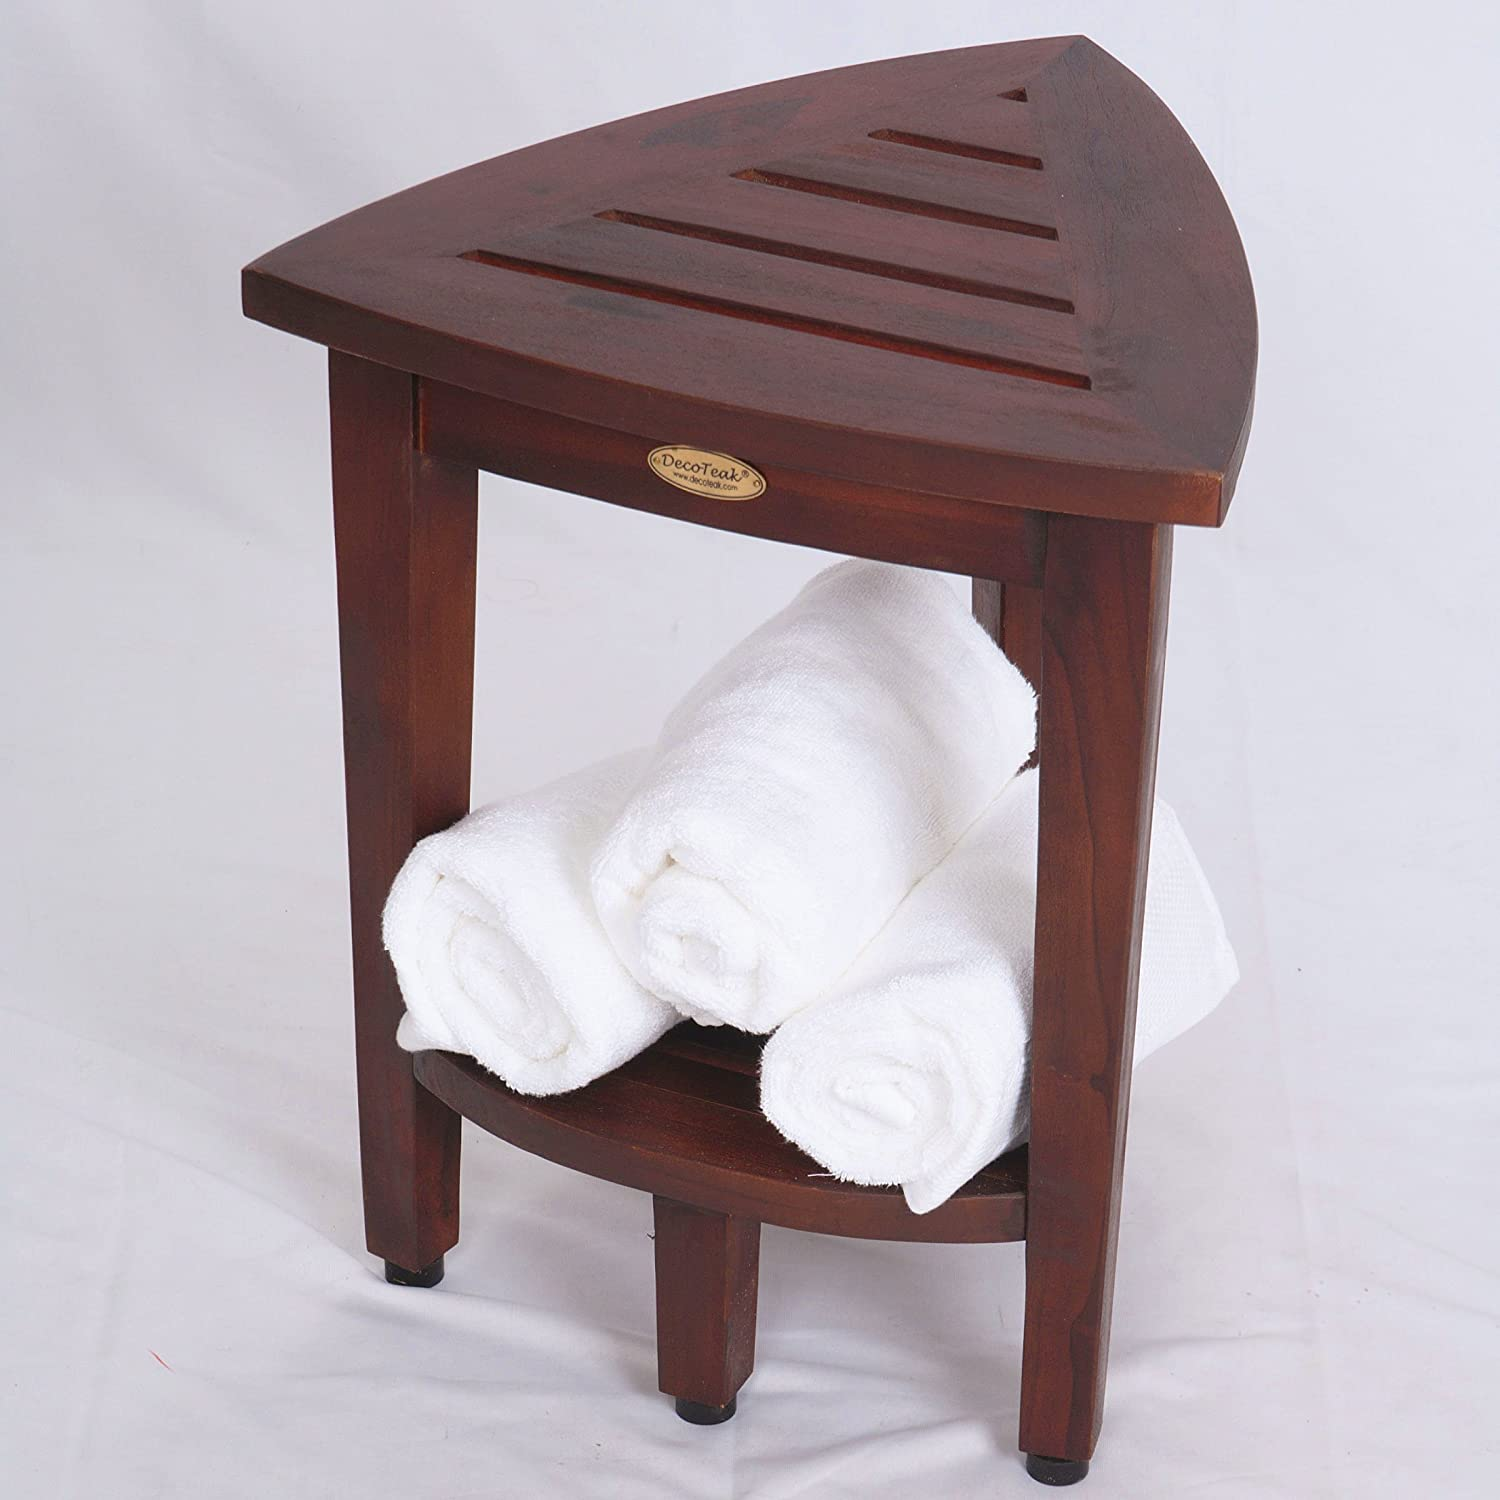 Amazon.com: New- Oasis FULLY ASSEMBLED Teak Corner Shower Bench ...